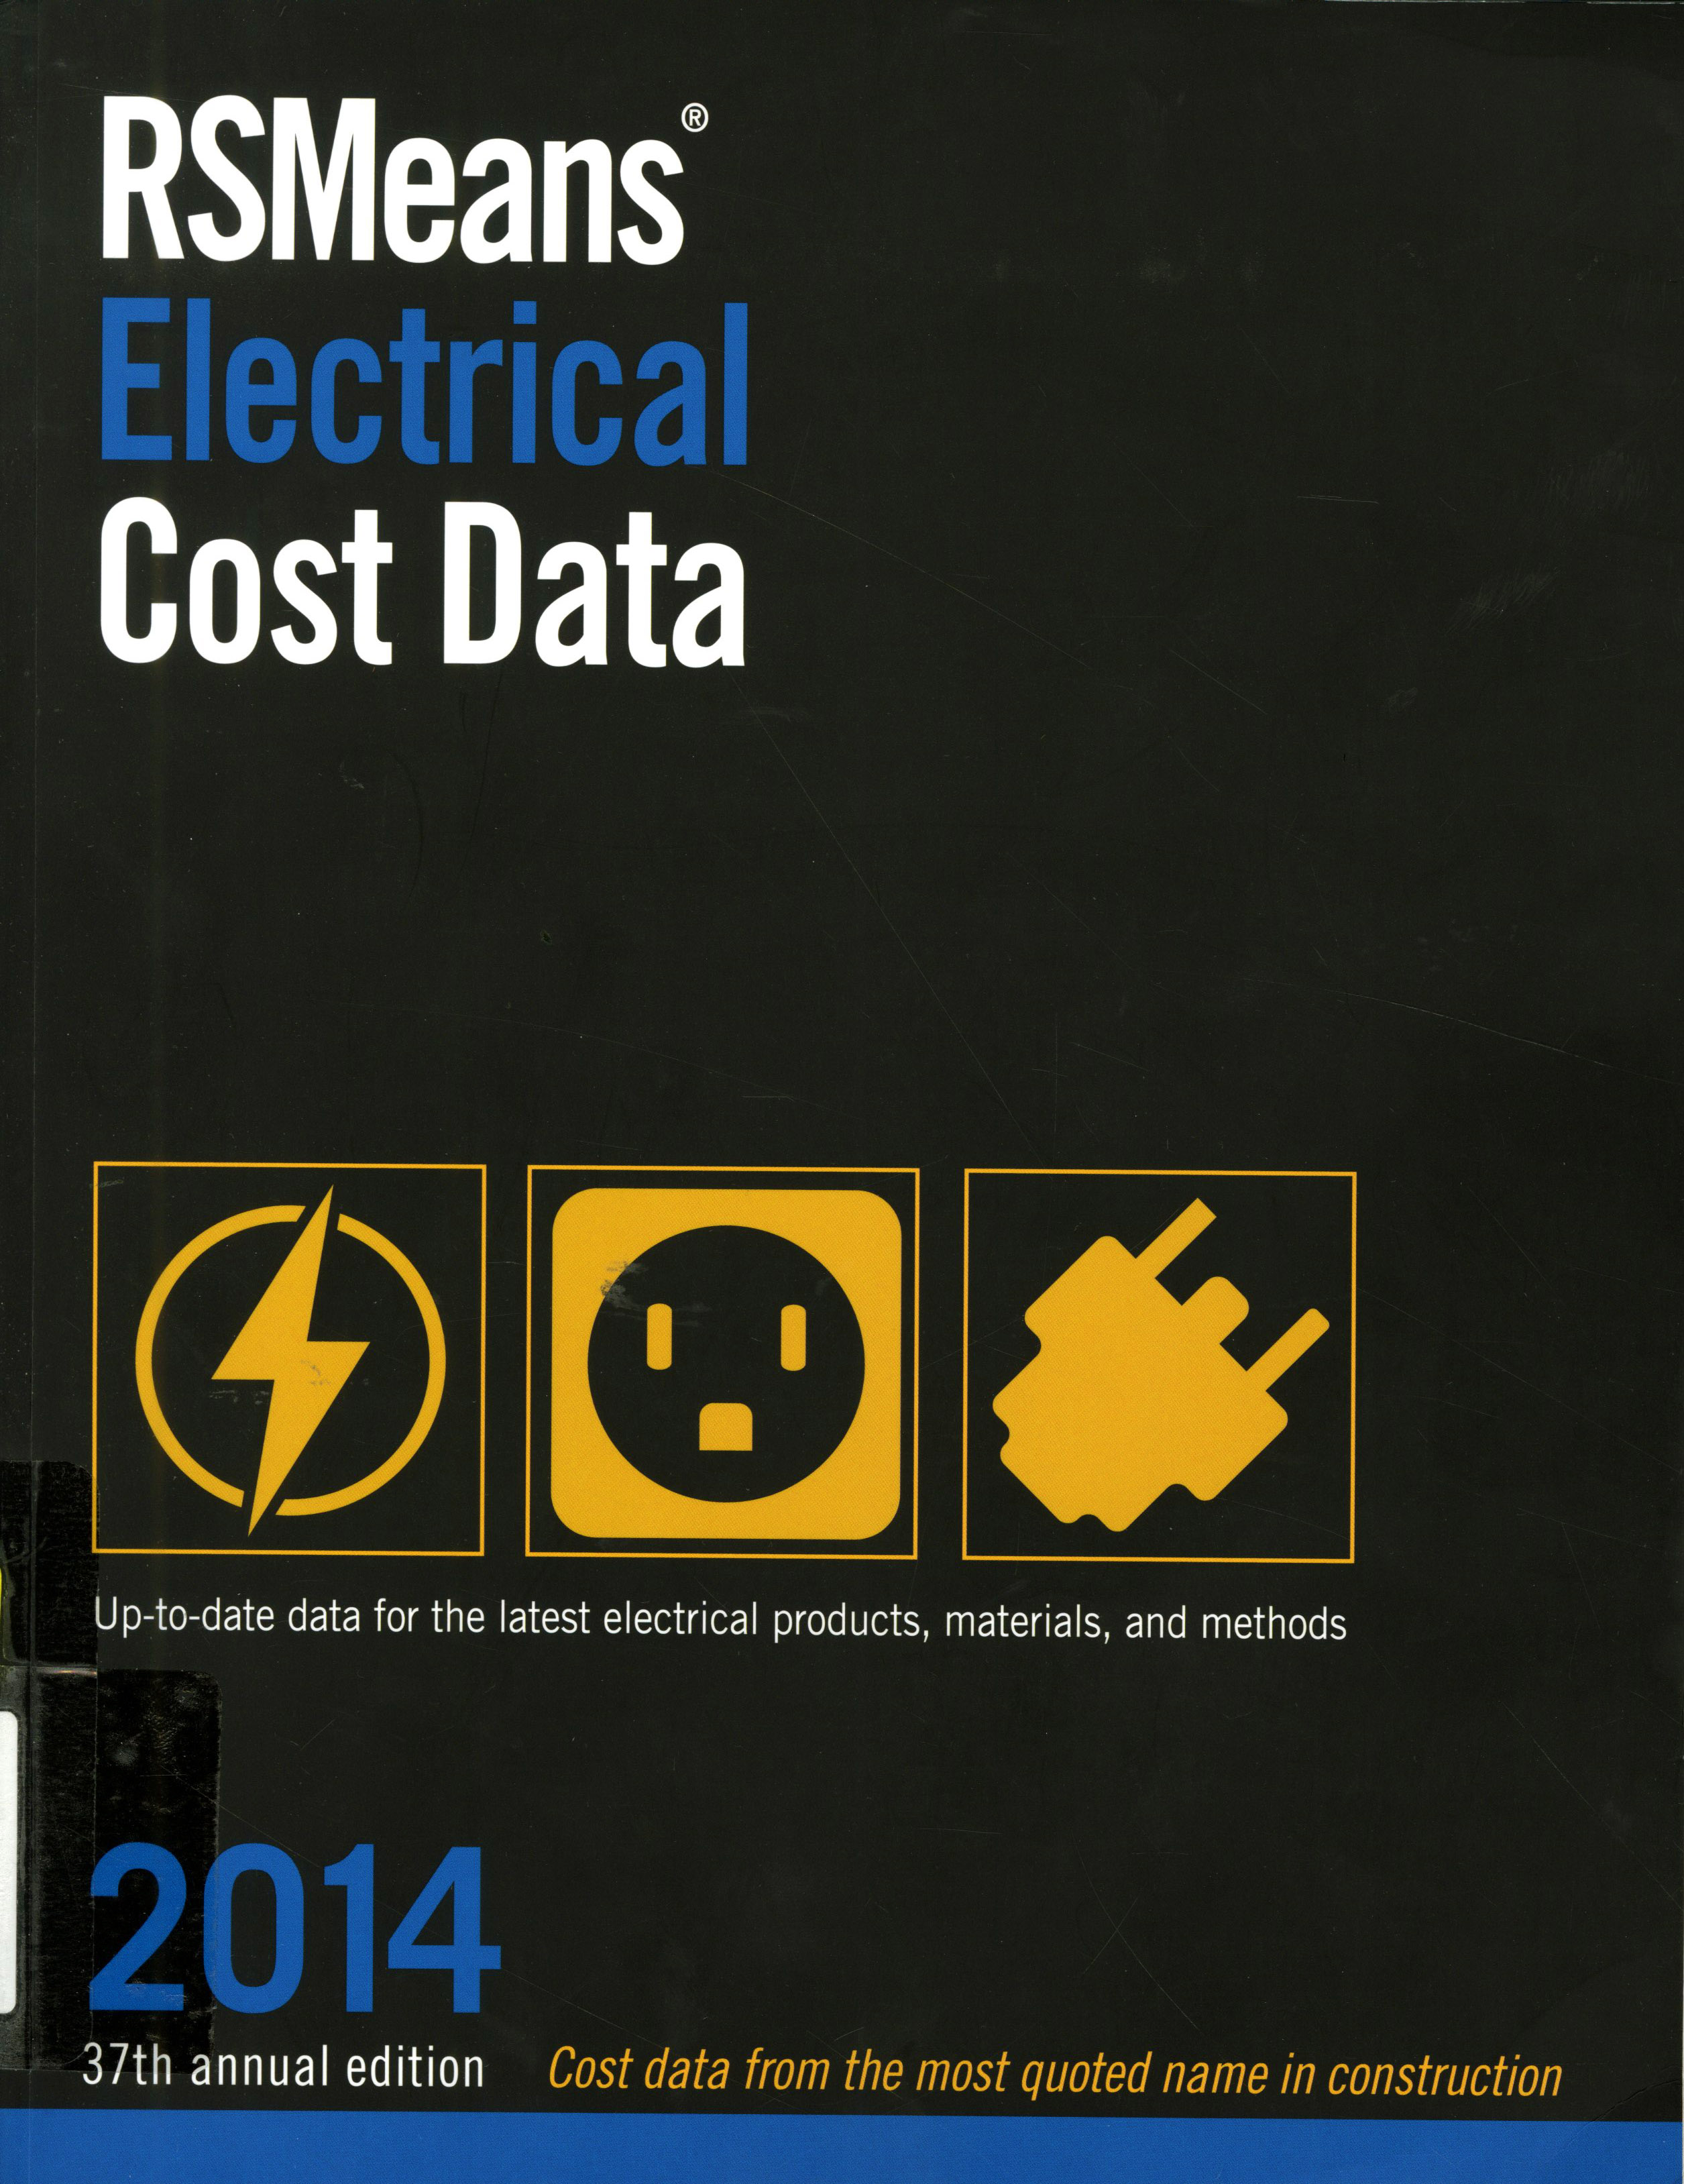 rsmeans electrical cost data